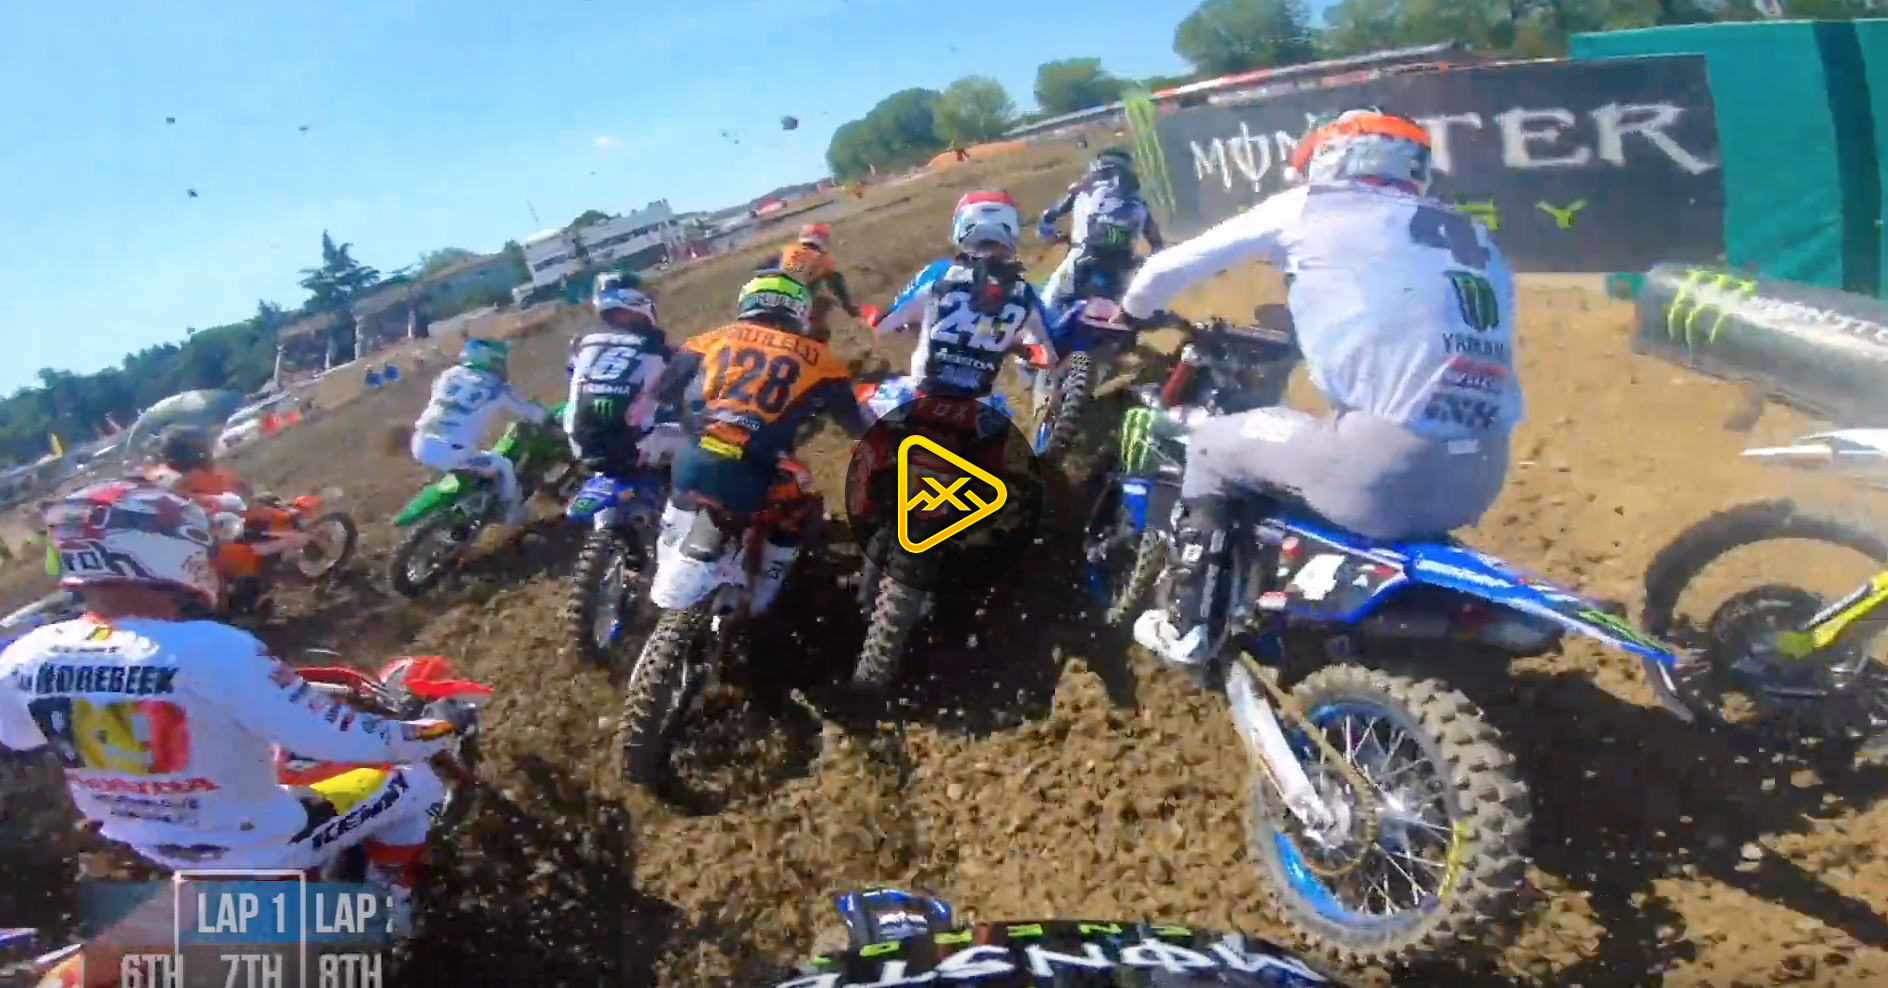 GoPro: Gautier Paulin at MXGP of Italy